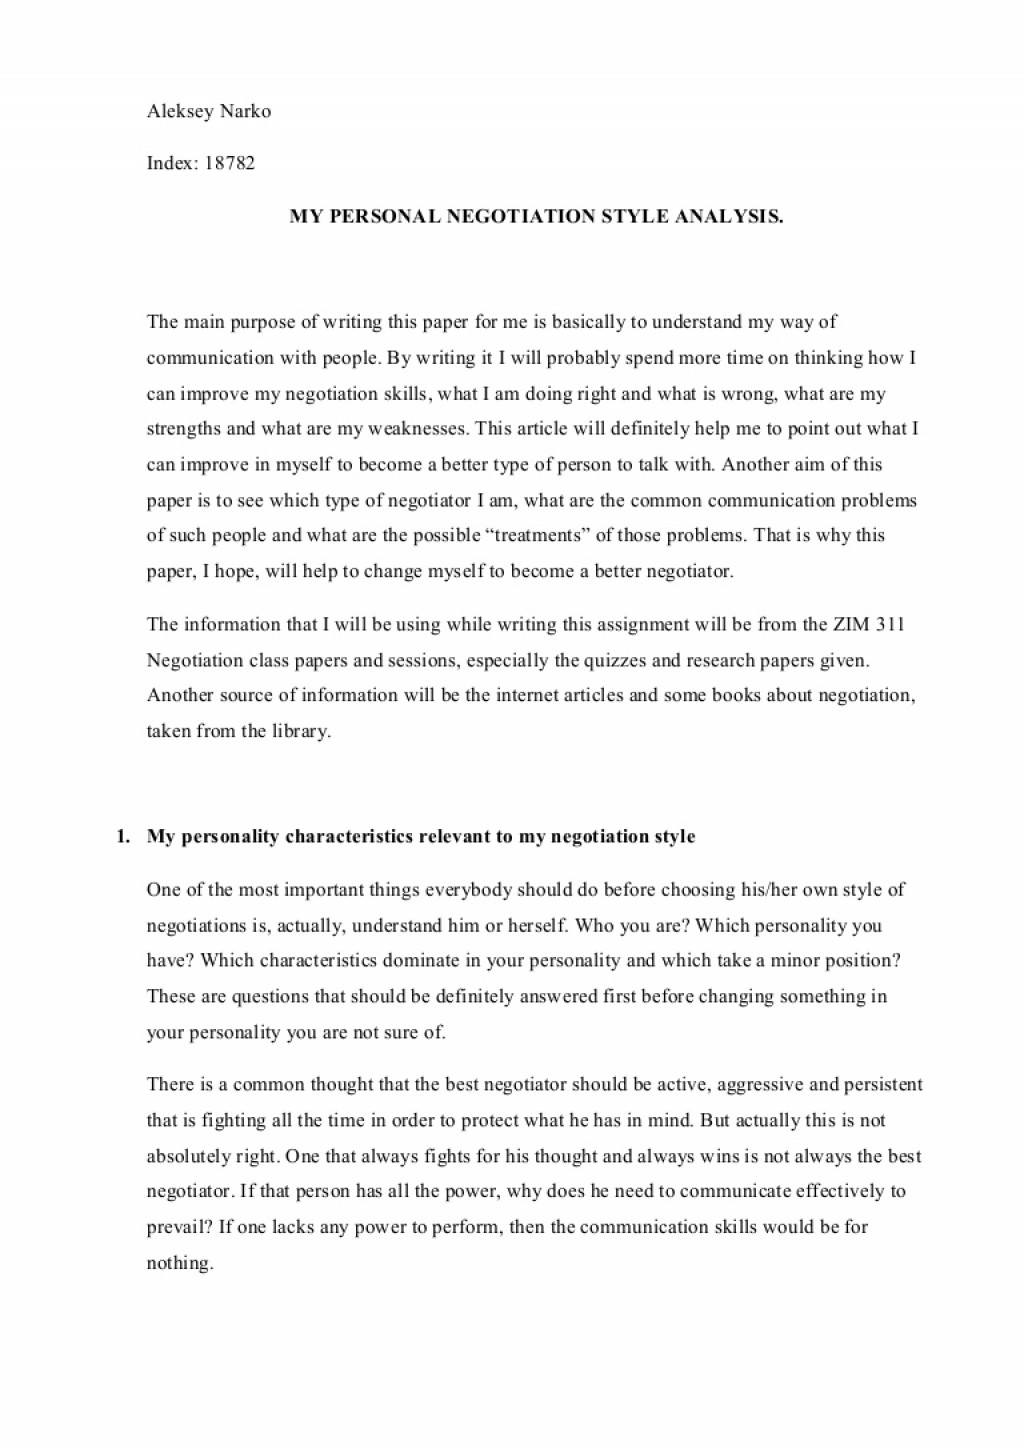 007 Personality Essay Example Negotiationsessay Phpapp01 Thumbnail Singular Questions My Conclusion Large